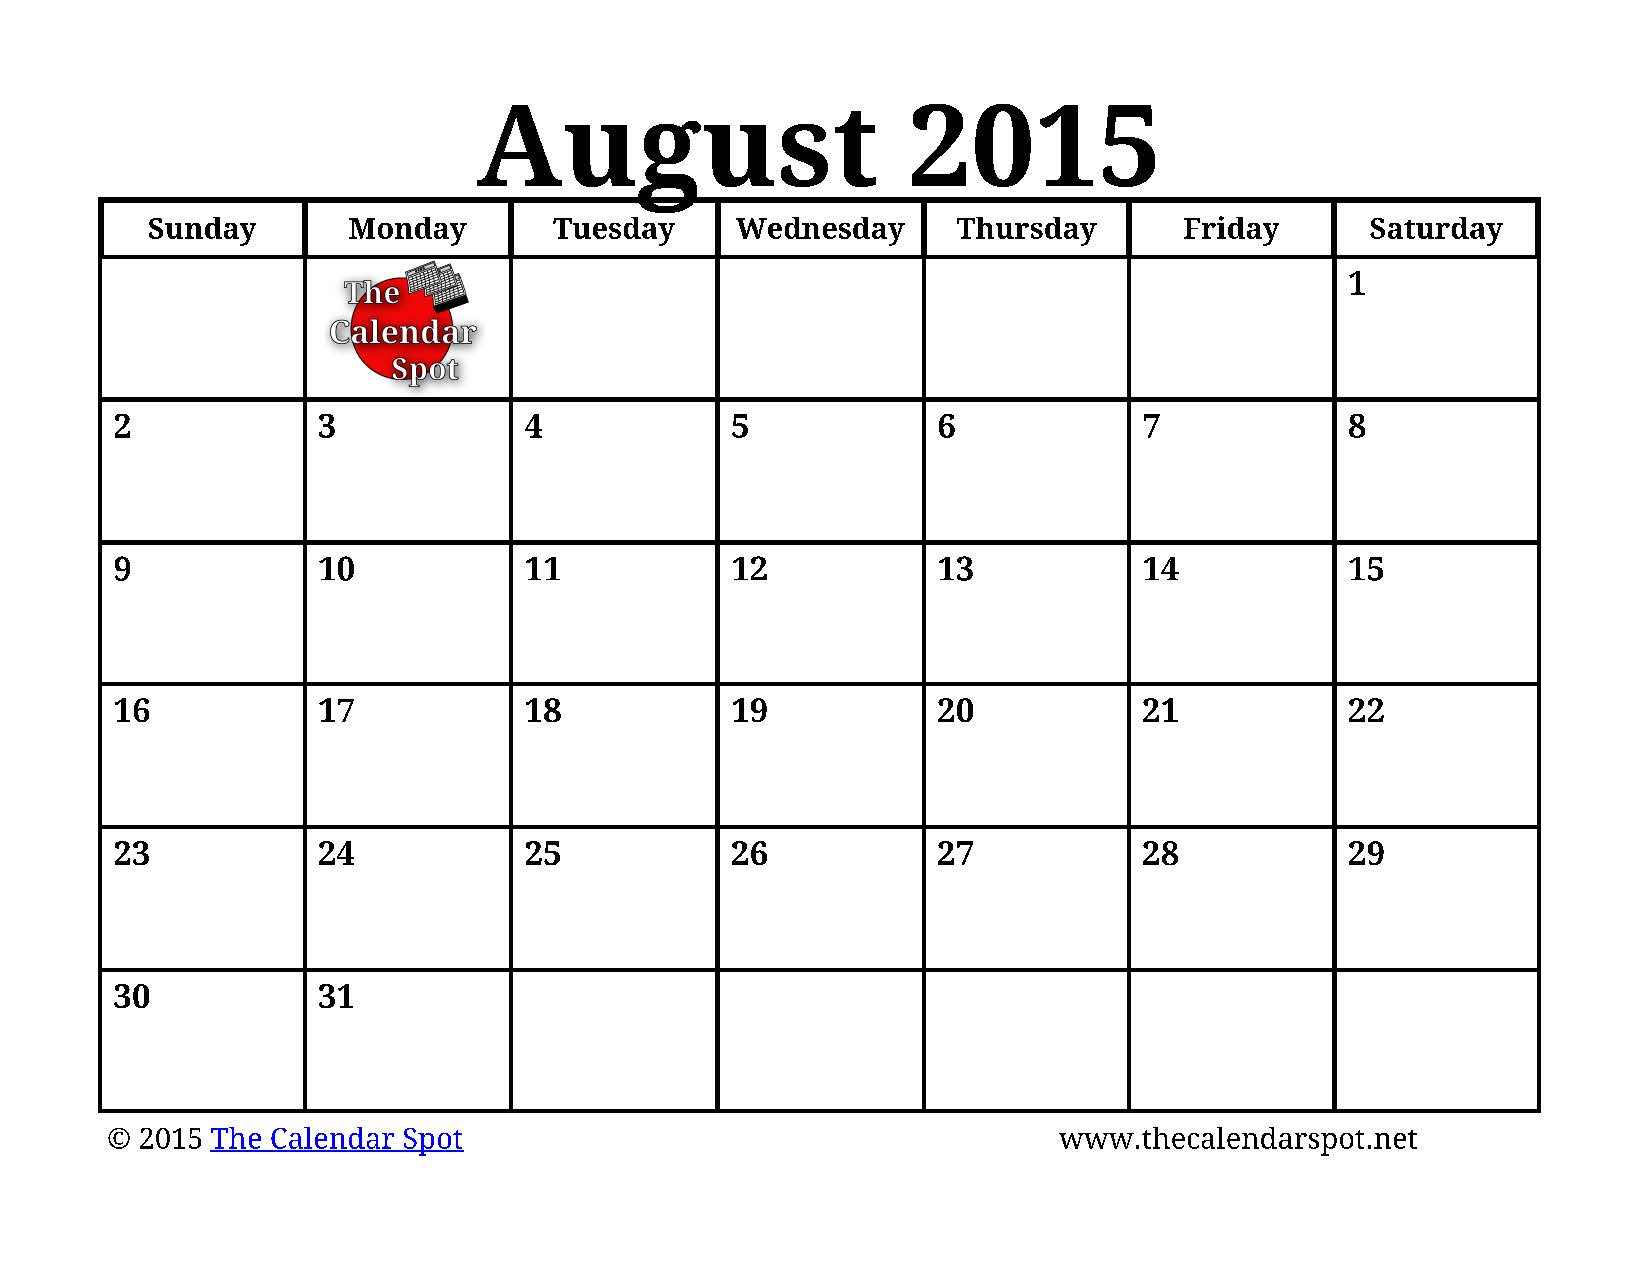 calendar printable images gallery category page 13